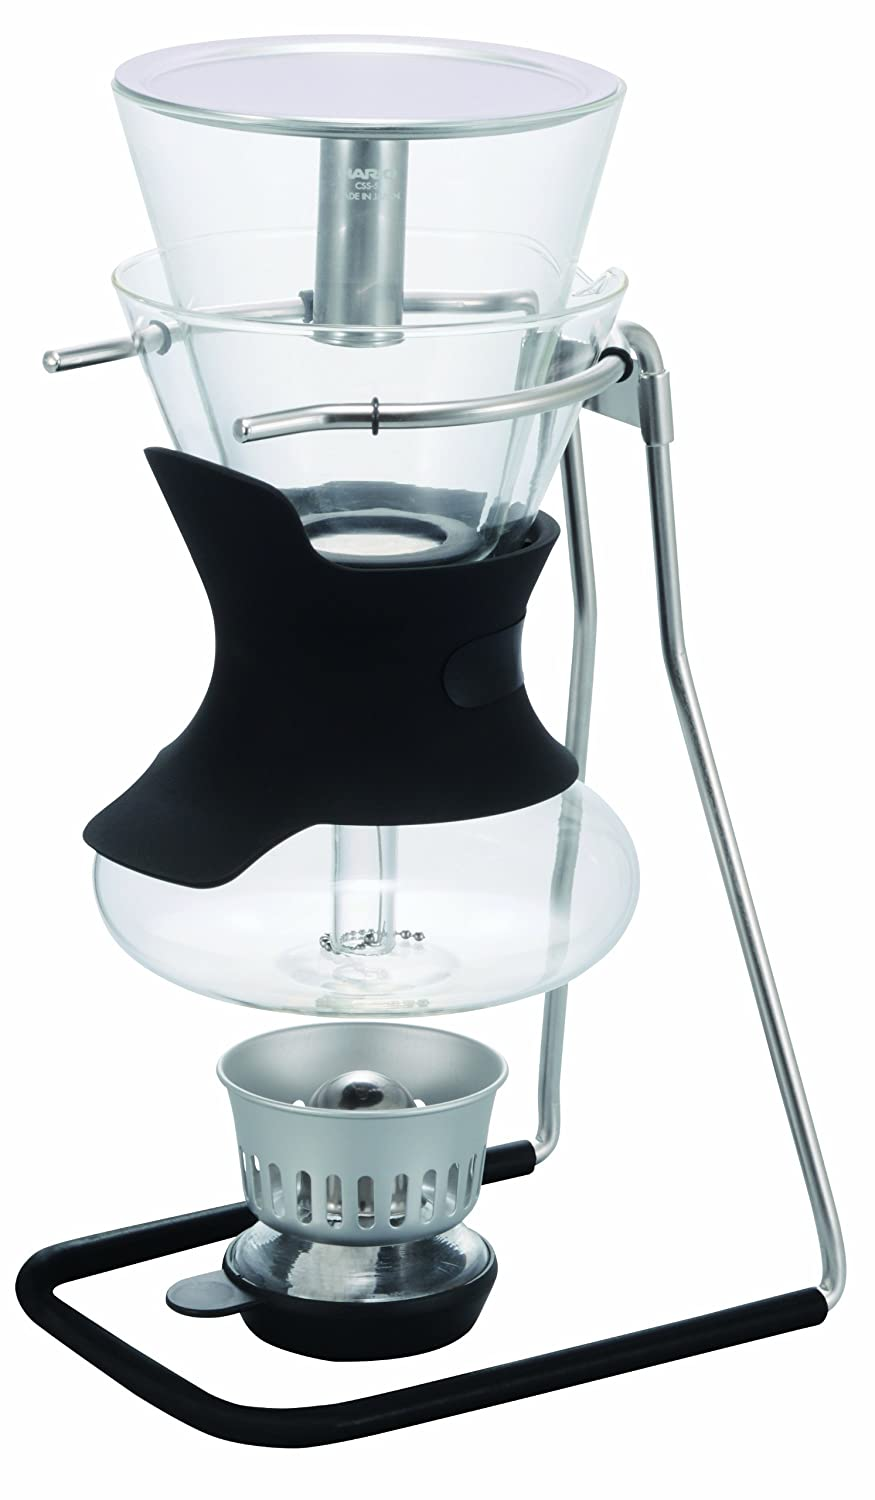 Hario SCA-5 1-Piece Glass 5-Cup Syphon Coffee Maker, Glass